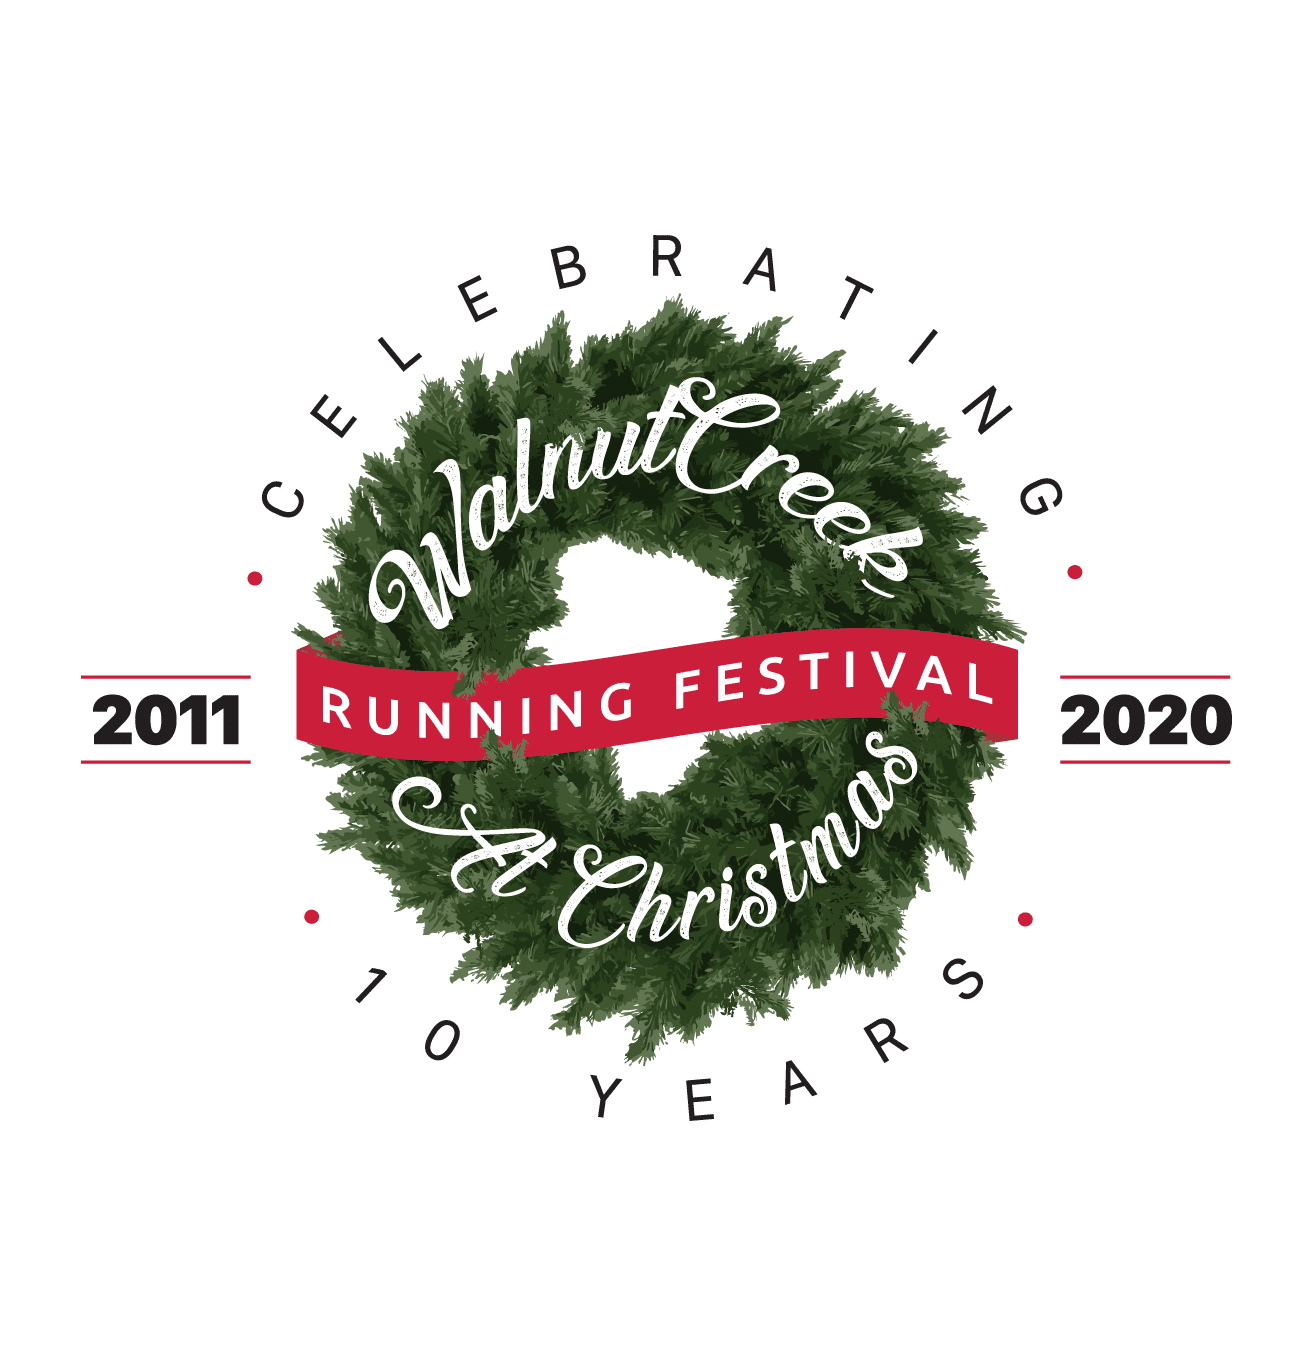 Walnut Creek Running Festival